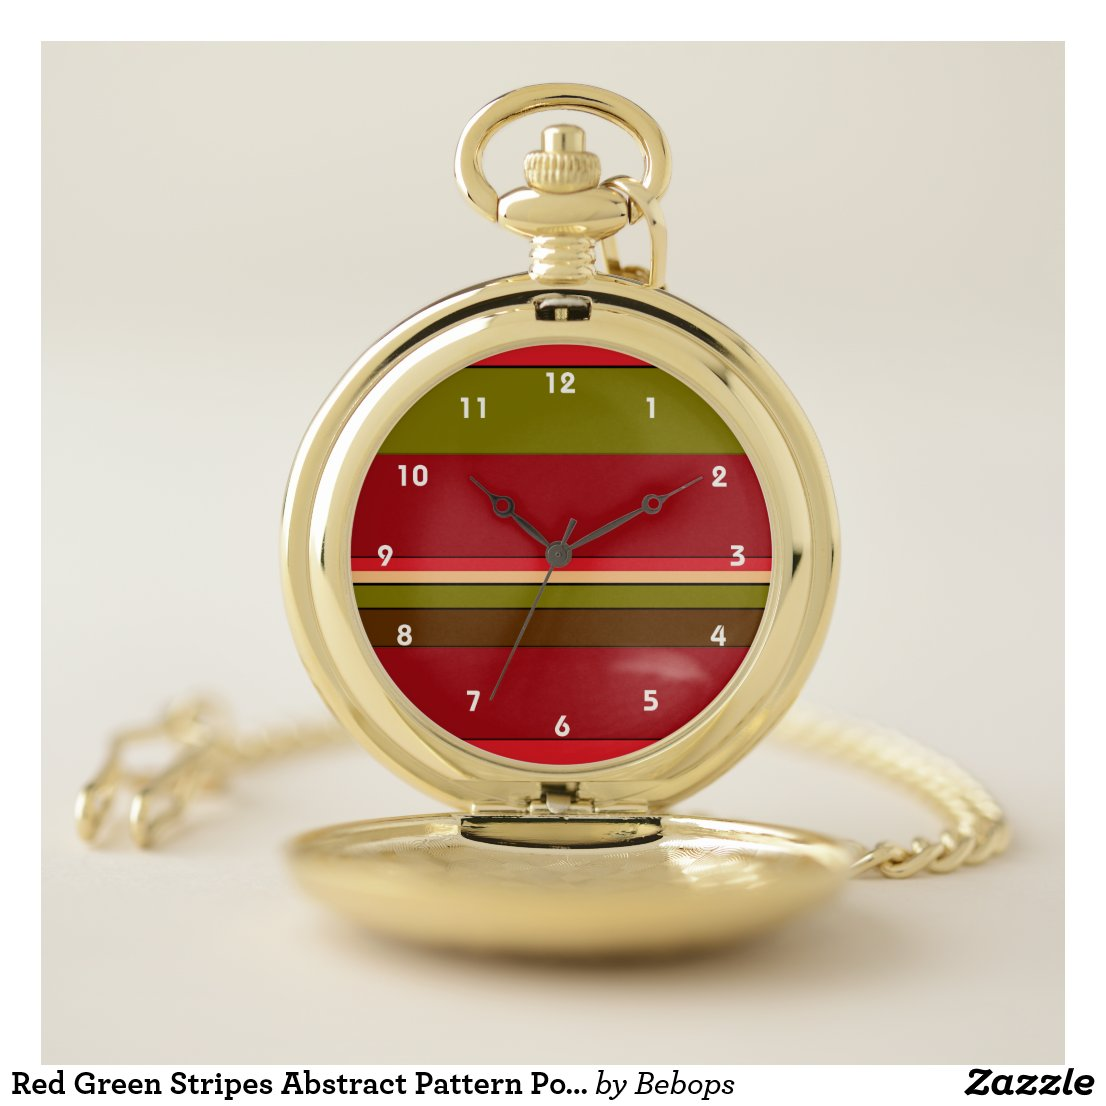 Red Green Stripes Abstract Pattern Pocket Watch